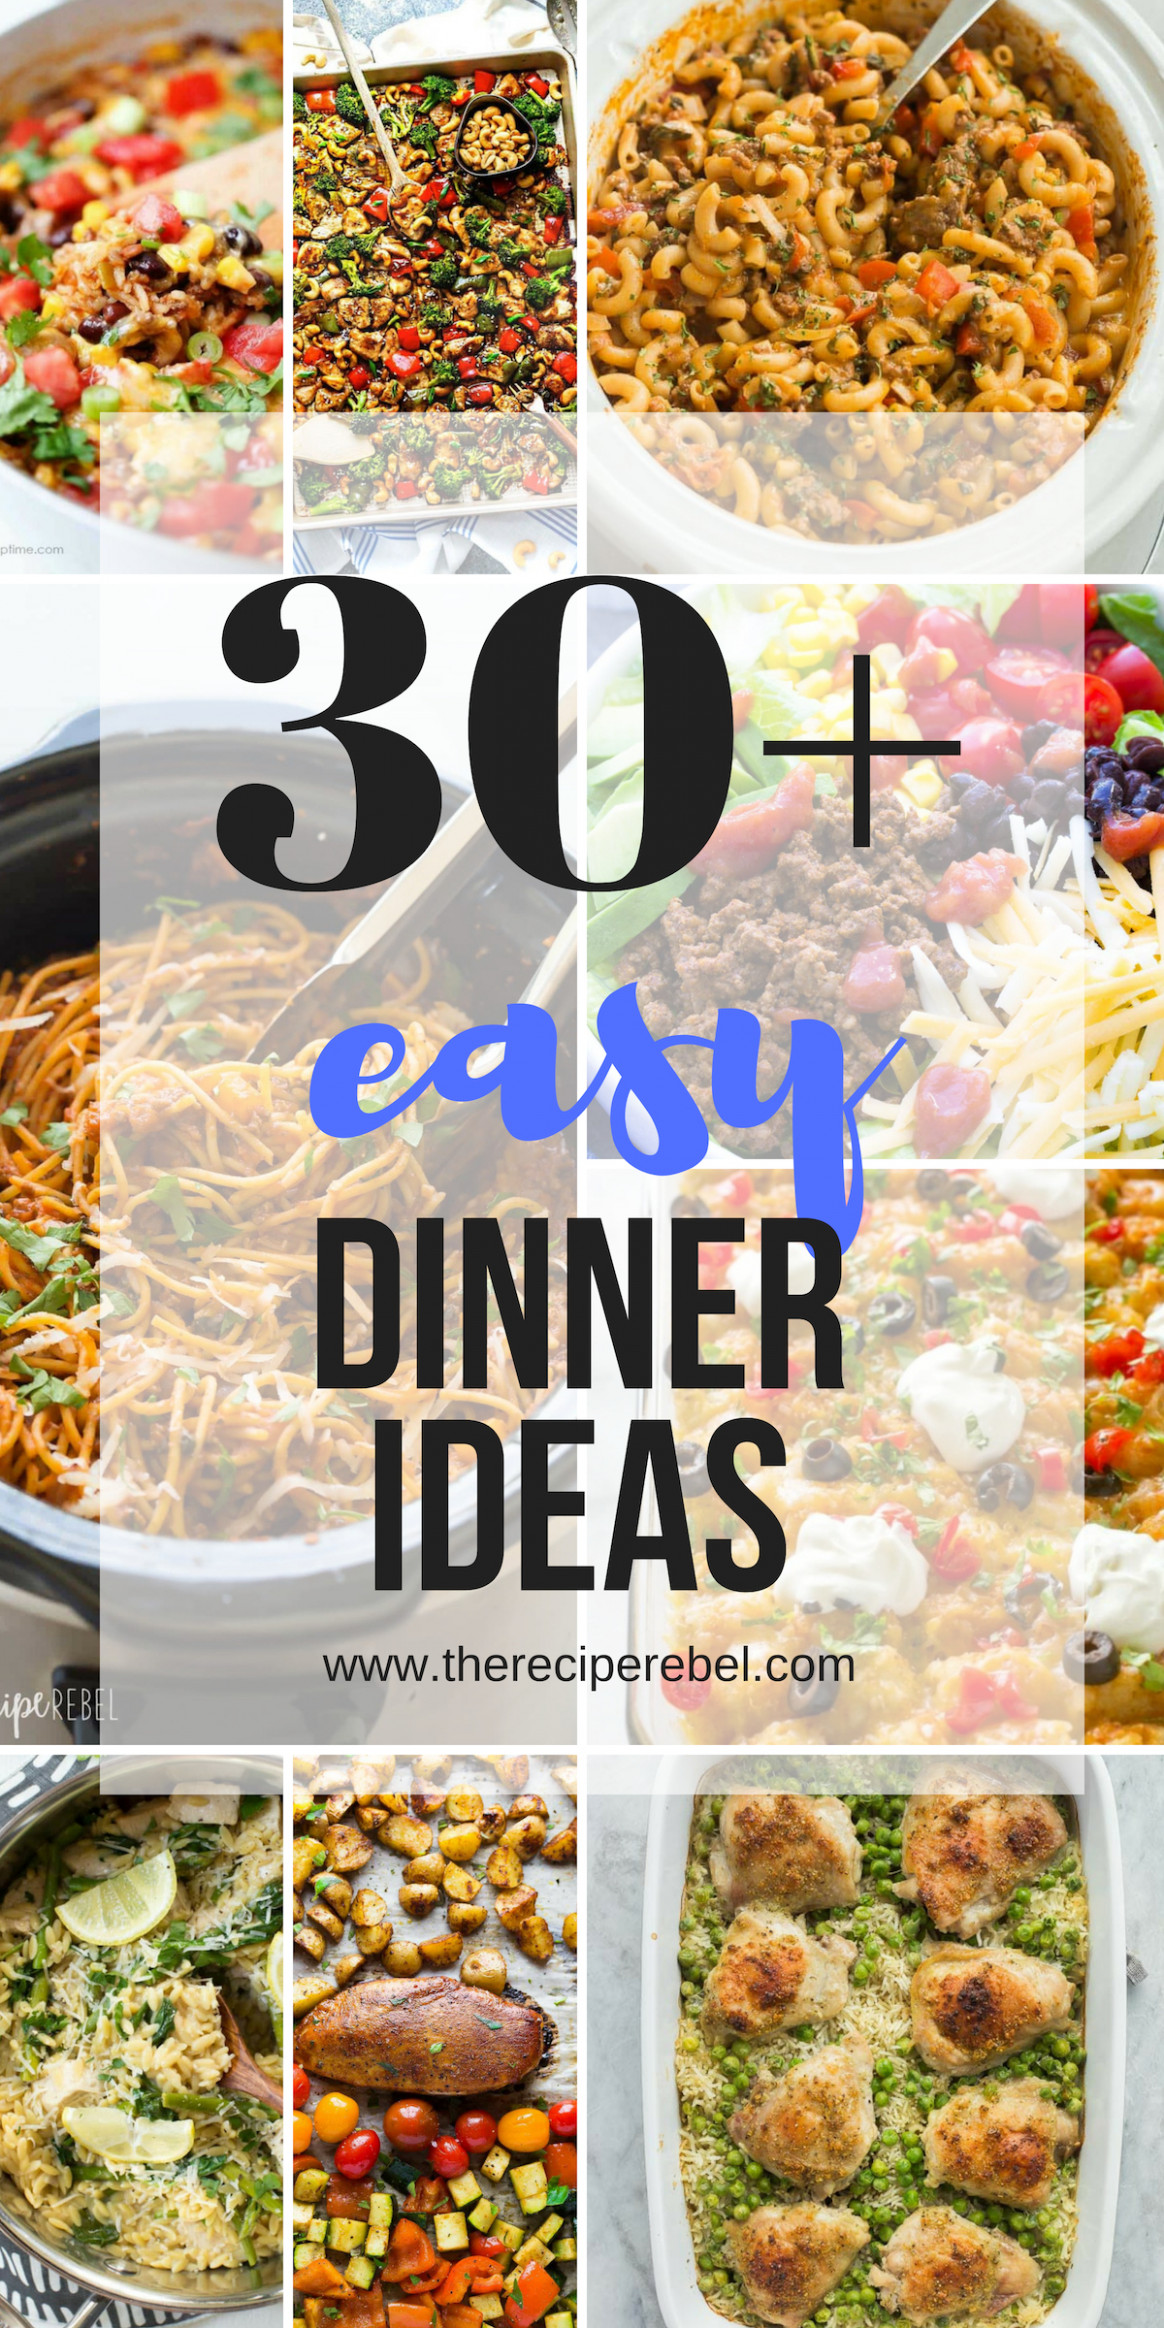 10+ Quick and Easy Dinner Ideas - family friendly! - The ..